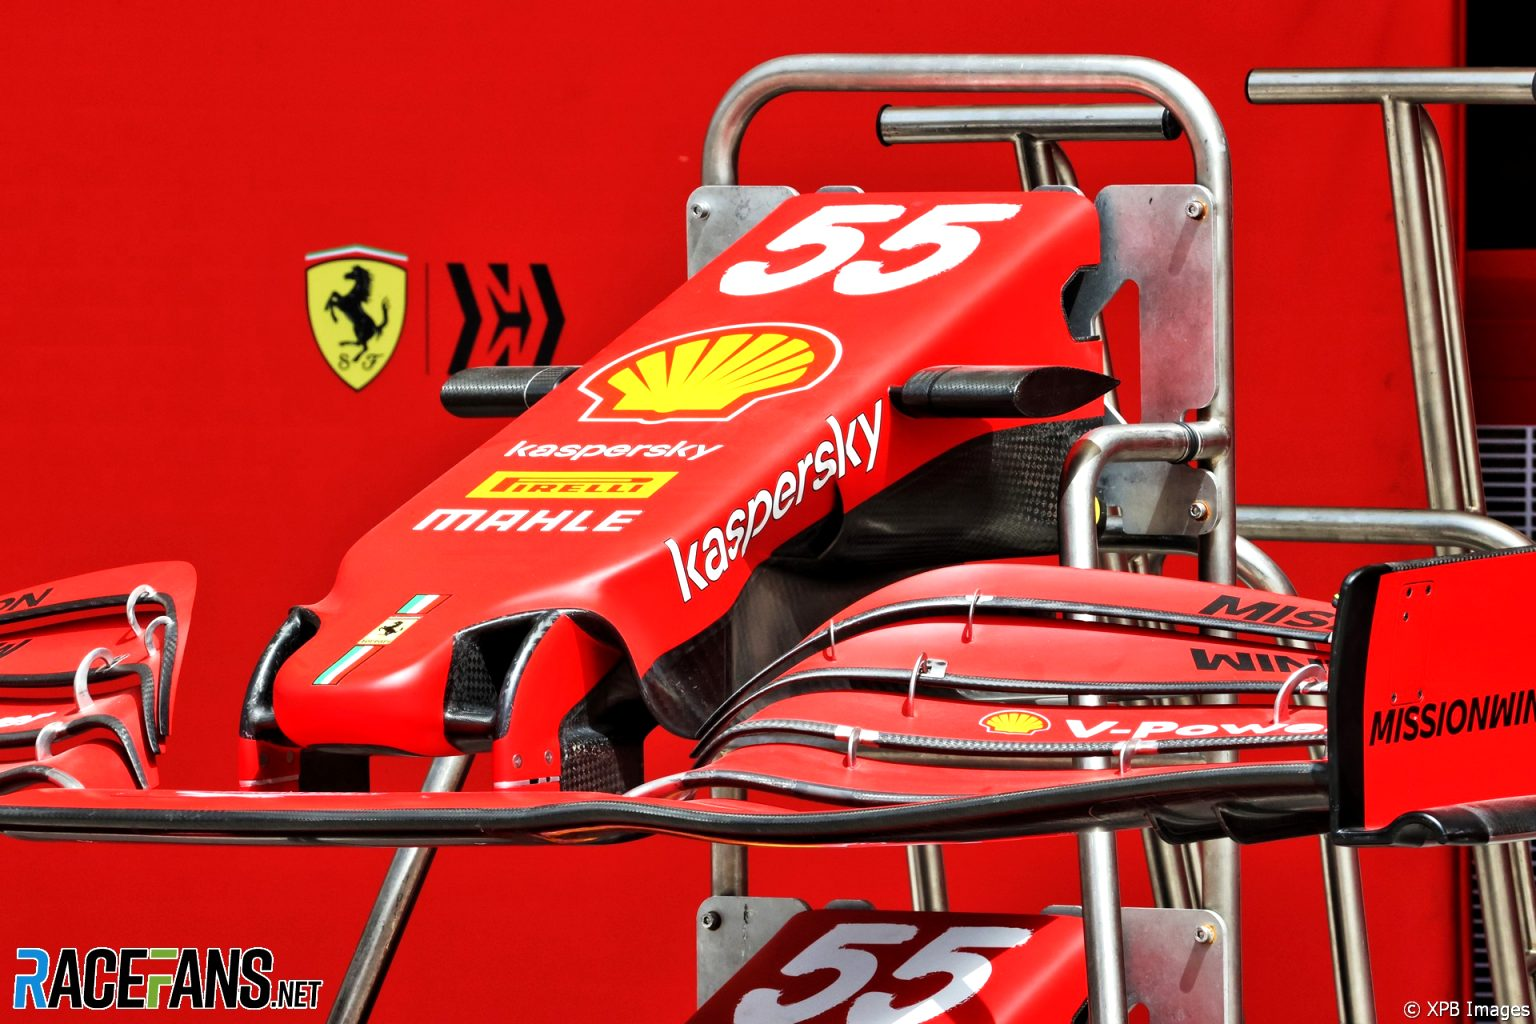 ferrari front wing 2021 Price, Design and Review